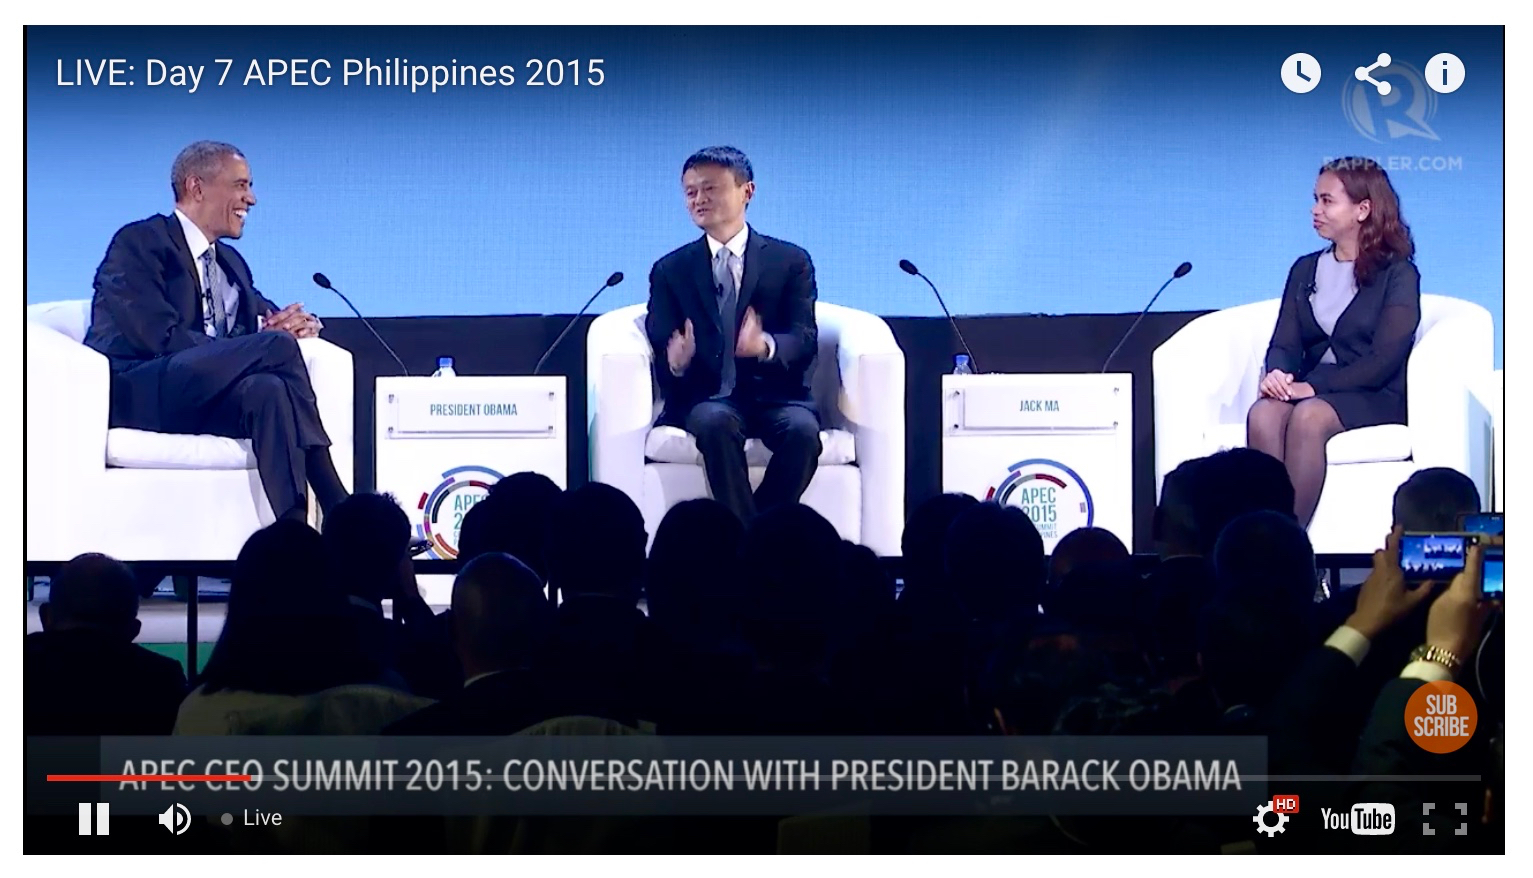 Philippine entrepreneur Aisa Mijeno and Alibaba CEO Jack Ma discuss sustainability leadership issues with President Obama at APEC 2015.